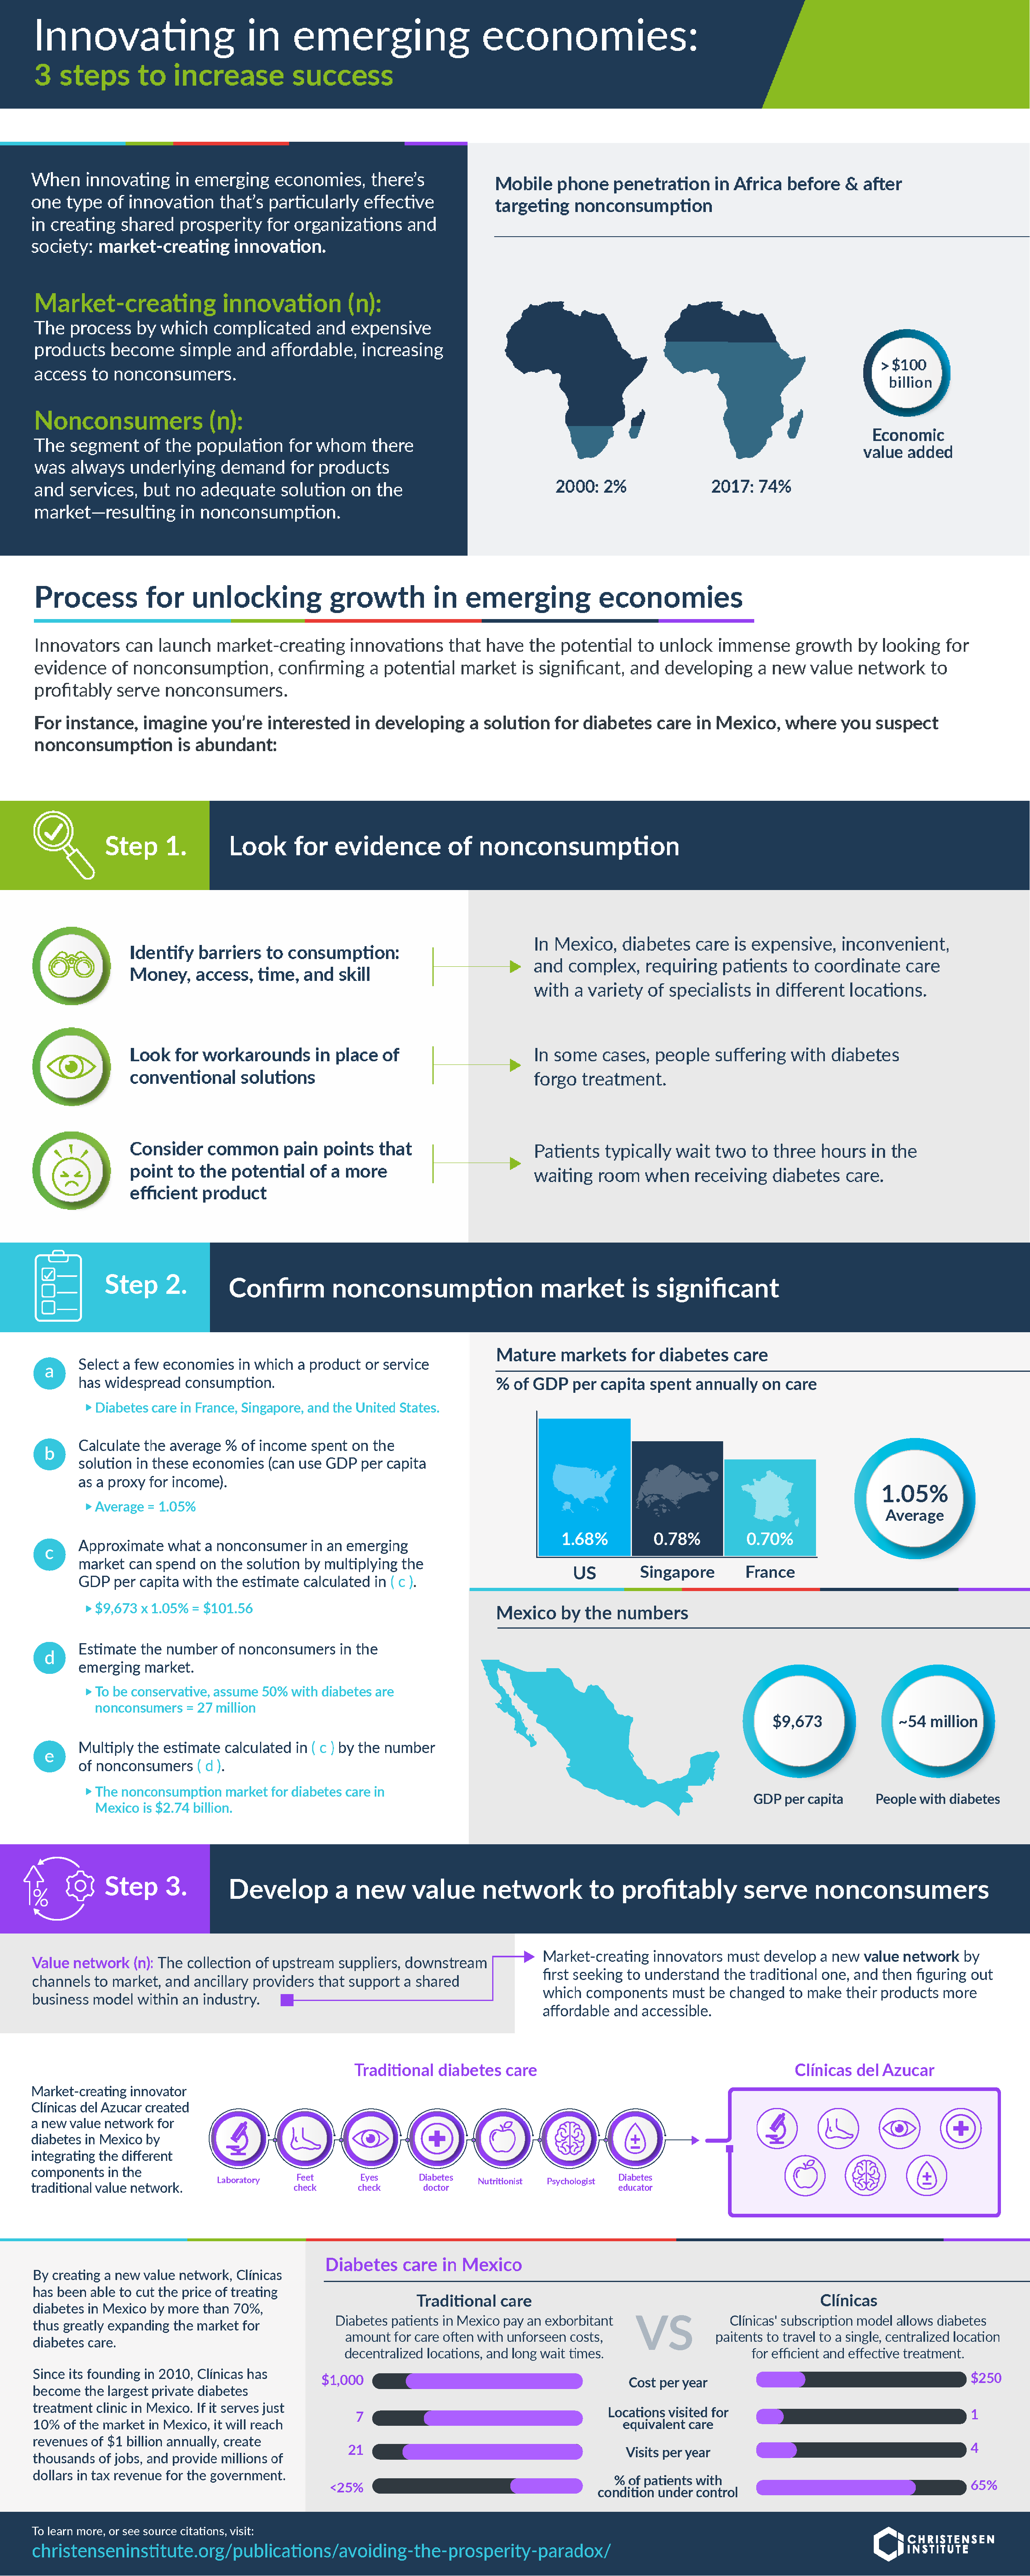 Infographic: 3 steps to unlock growth in emerging economies